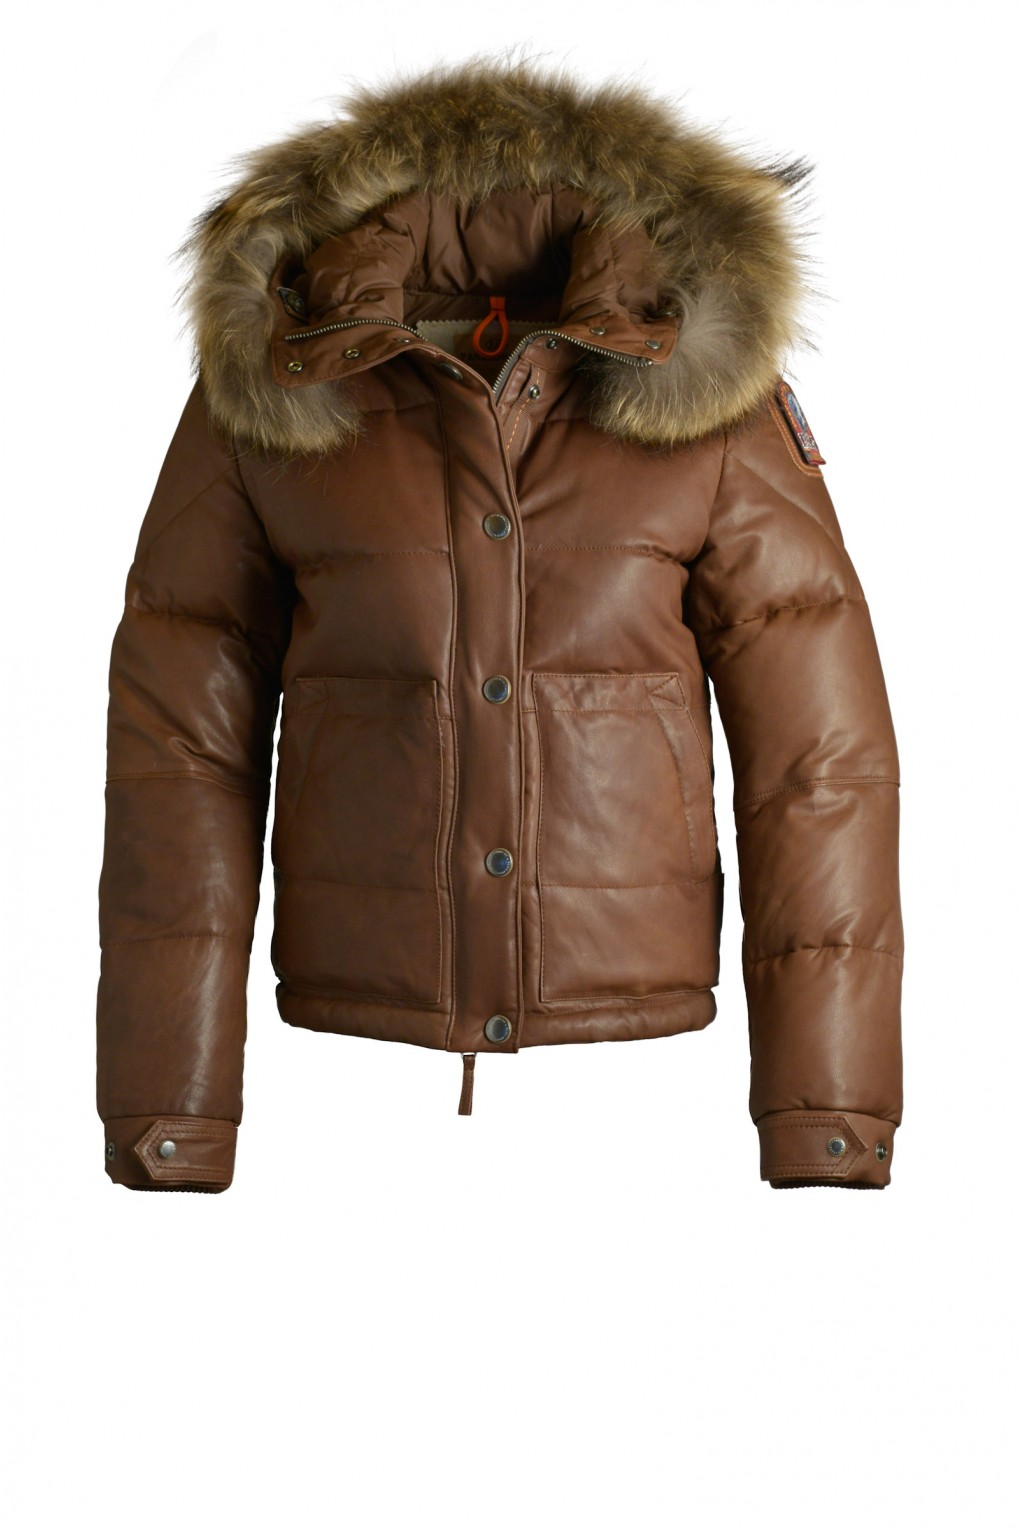 parajumpers LINDA LEATHER woman outerwear Brown